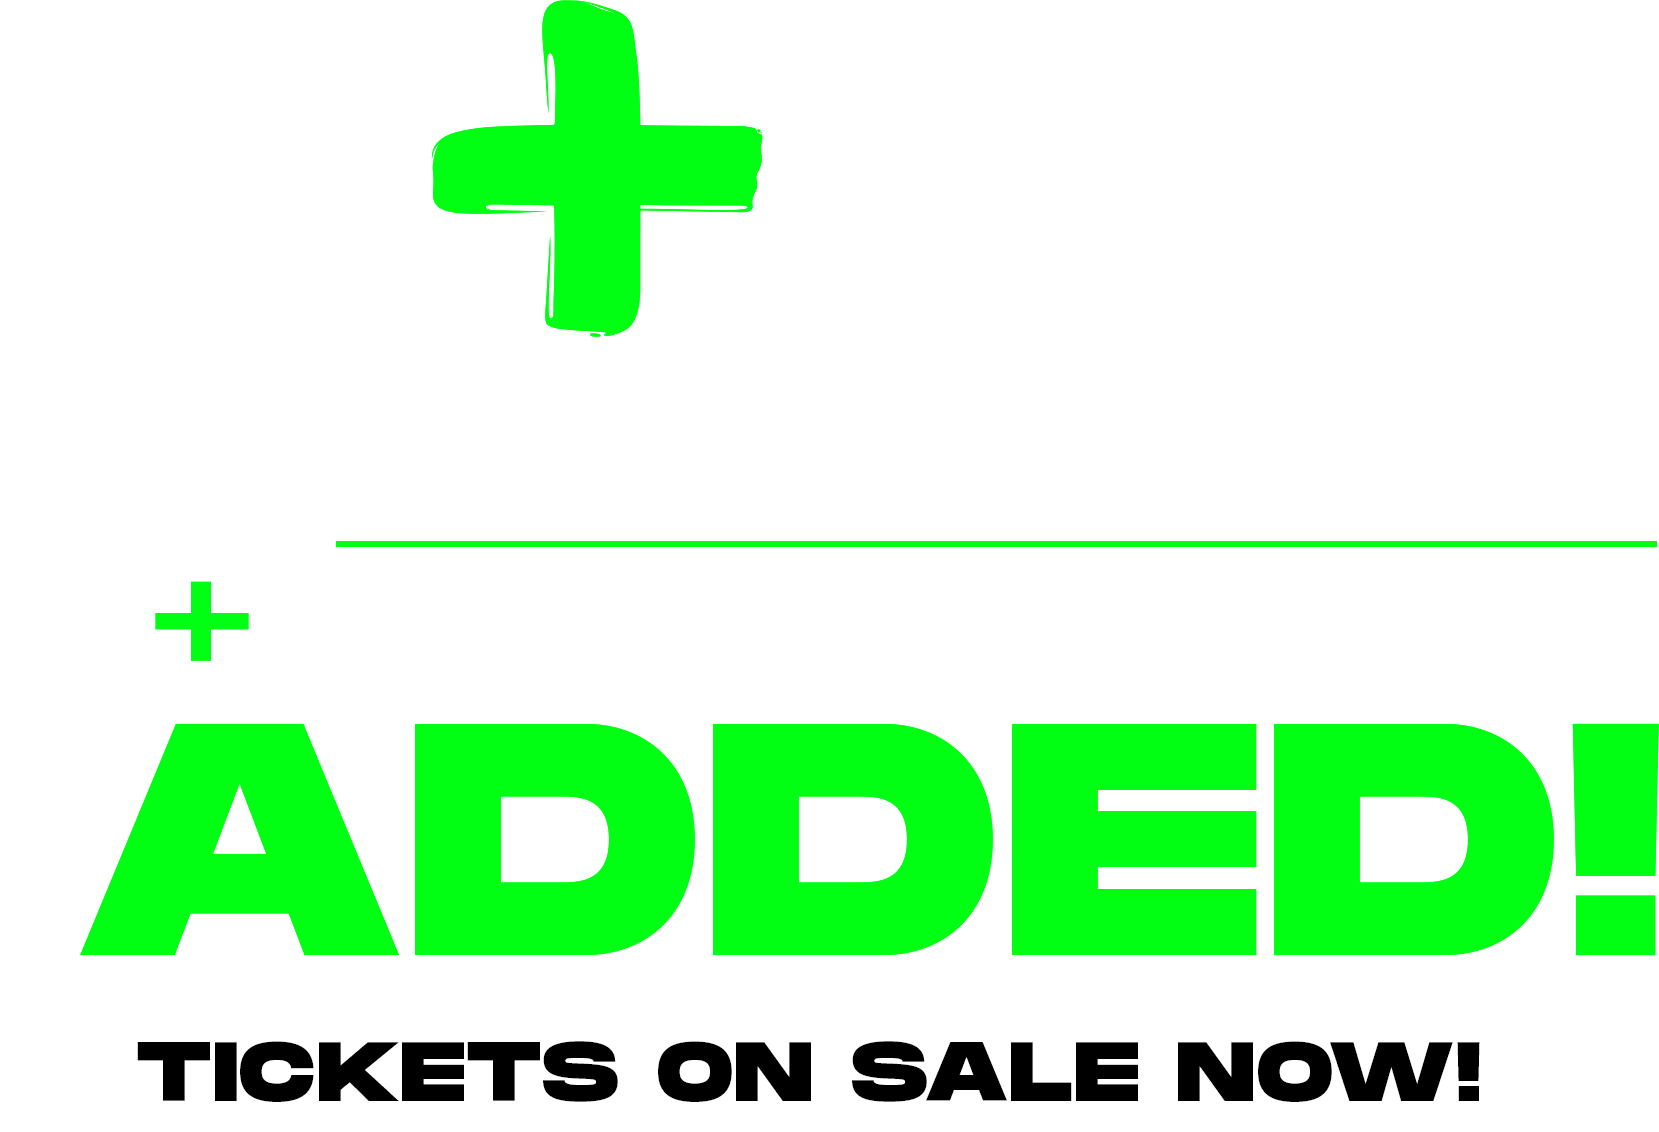 Dashboard Confessional + Scarypoolparty Added - Tickets on Sale Now!